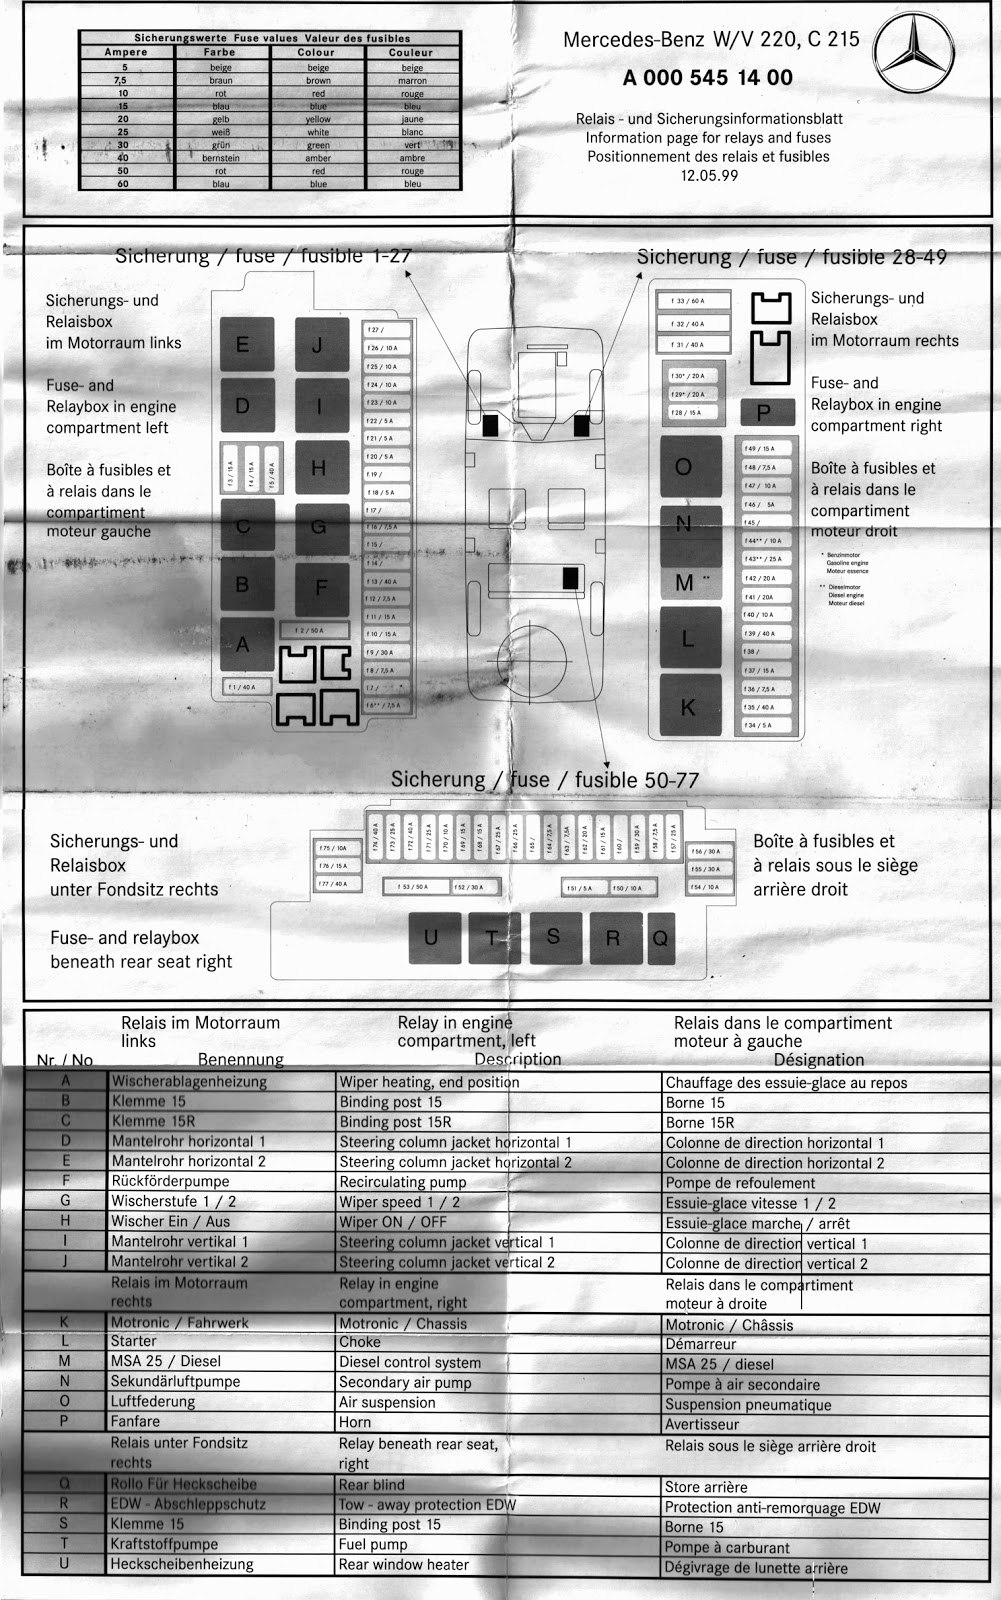 2002 s500 fuse diagram mercedes s500 fuse diagram